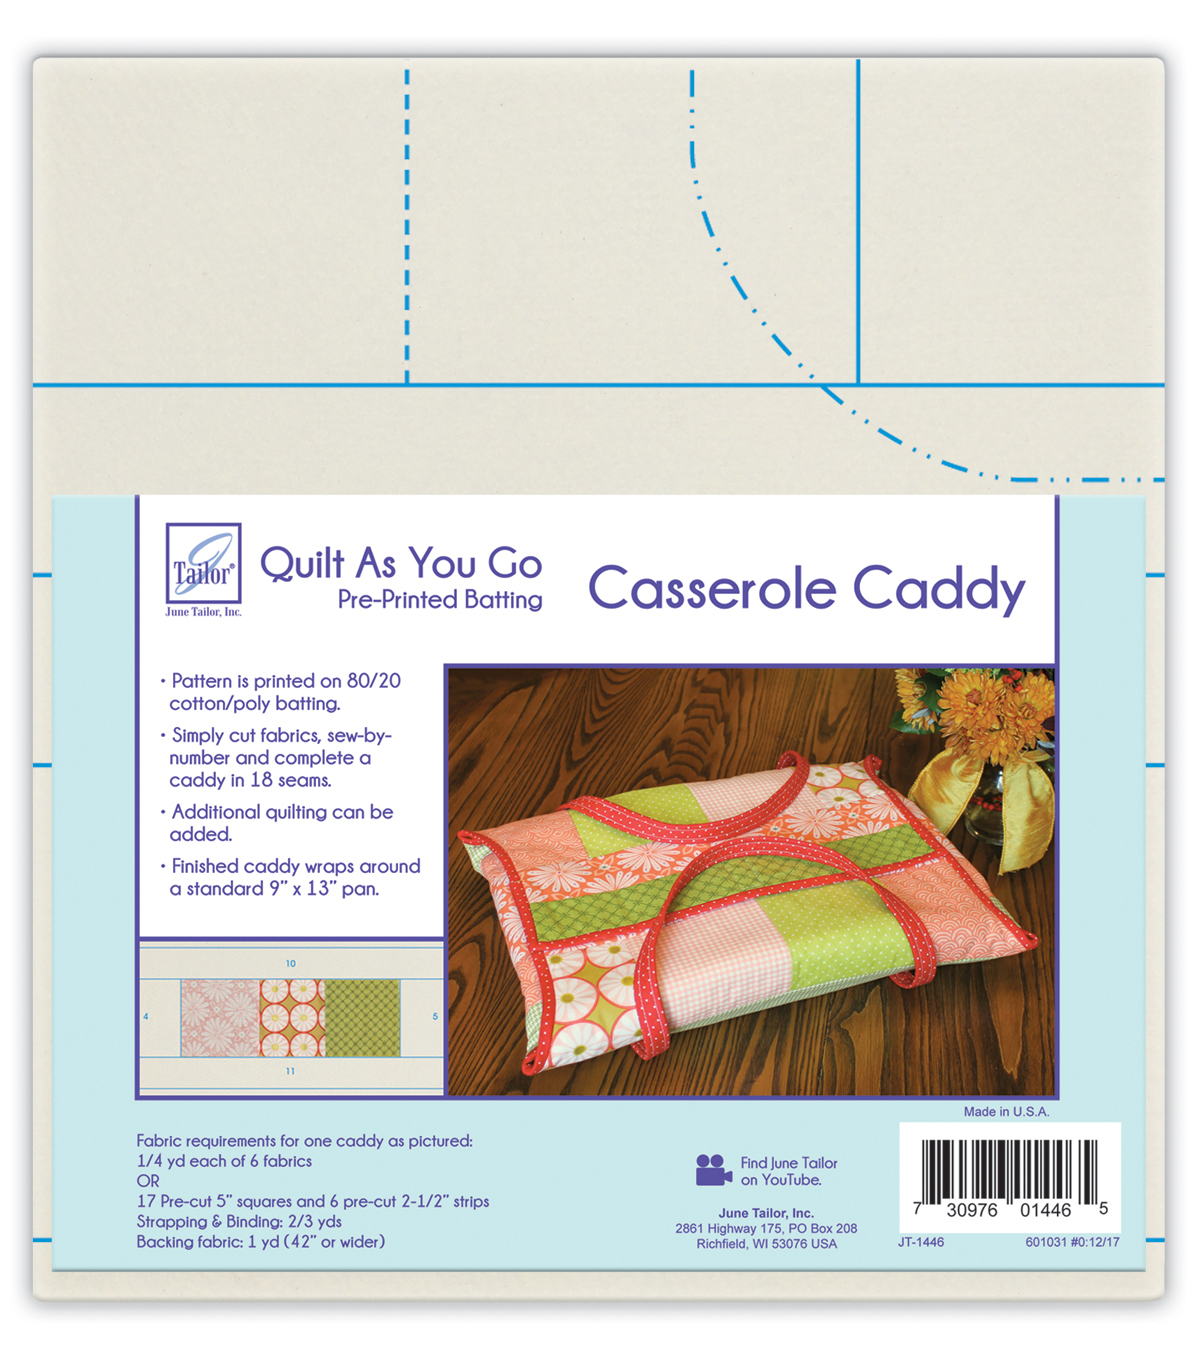 June Tailor Quilt As You Go Pre-printed Batting for Casserole Caddy